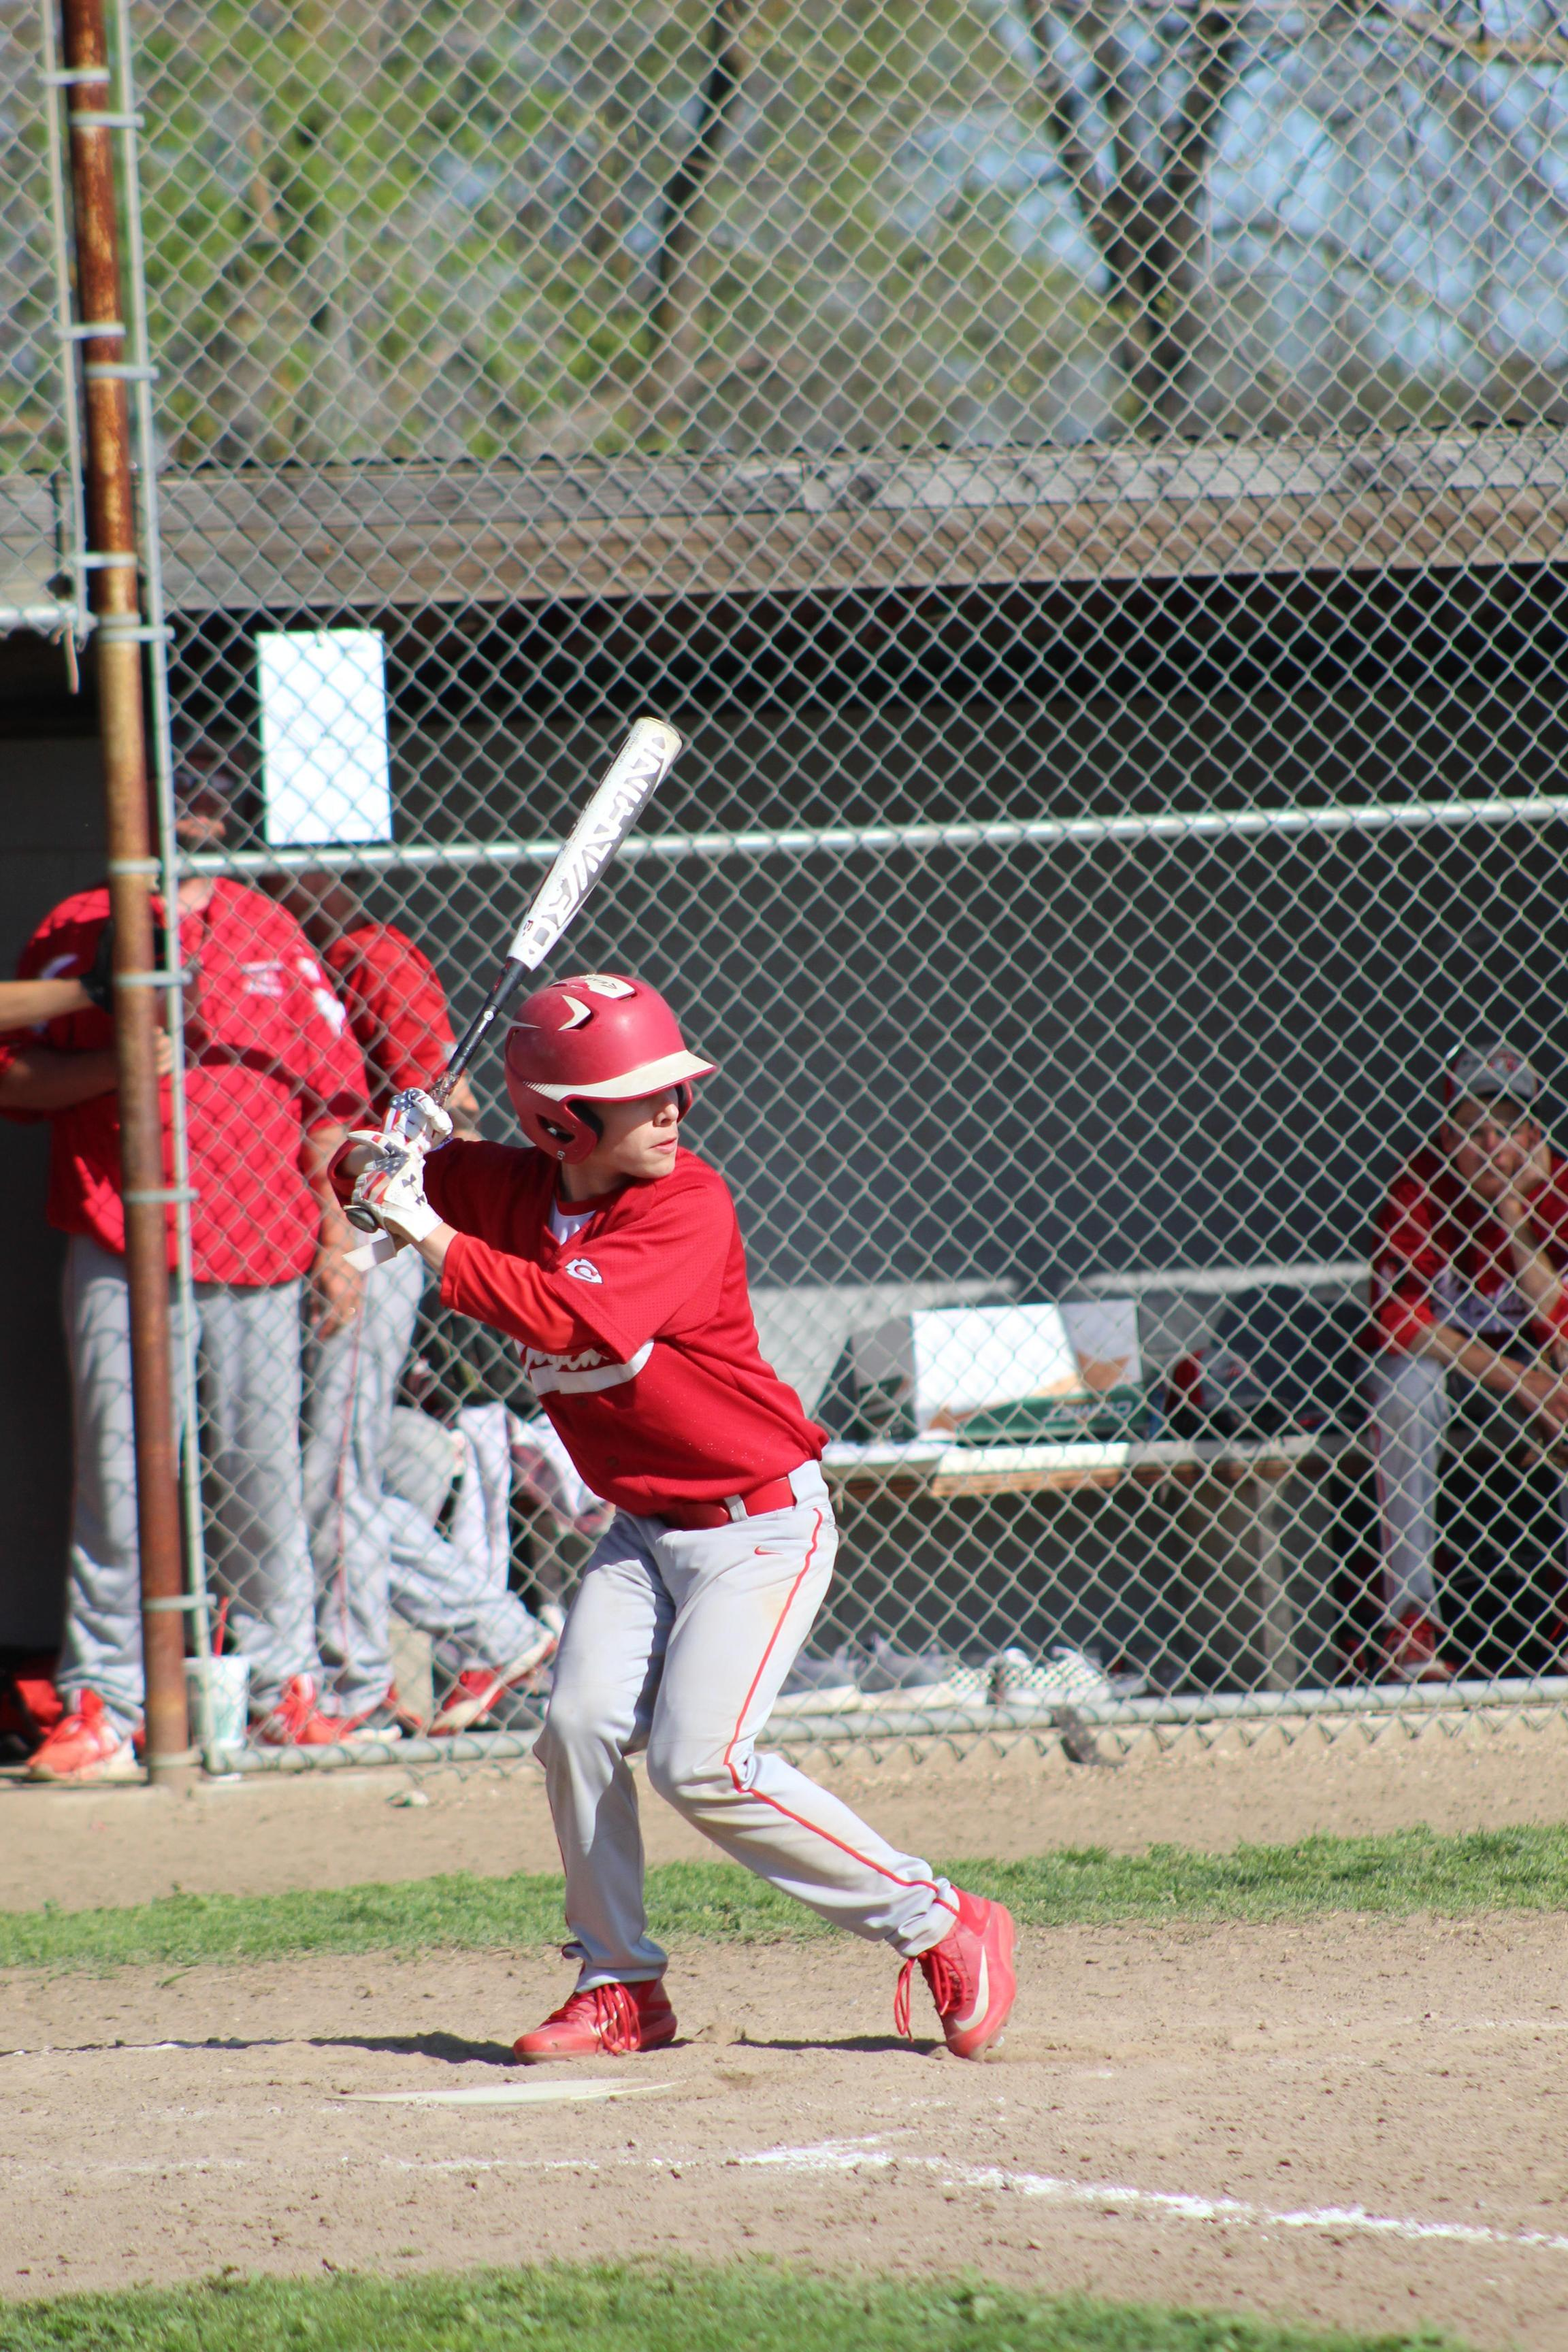 JV Baseball in action against Sierra